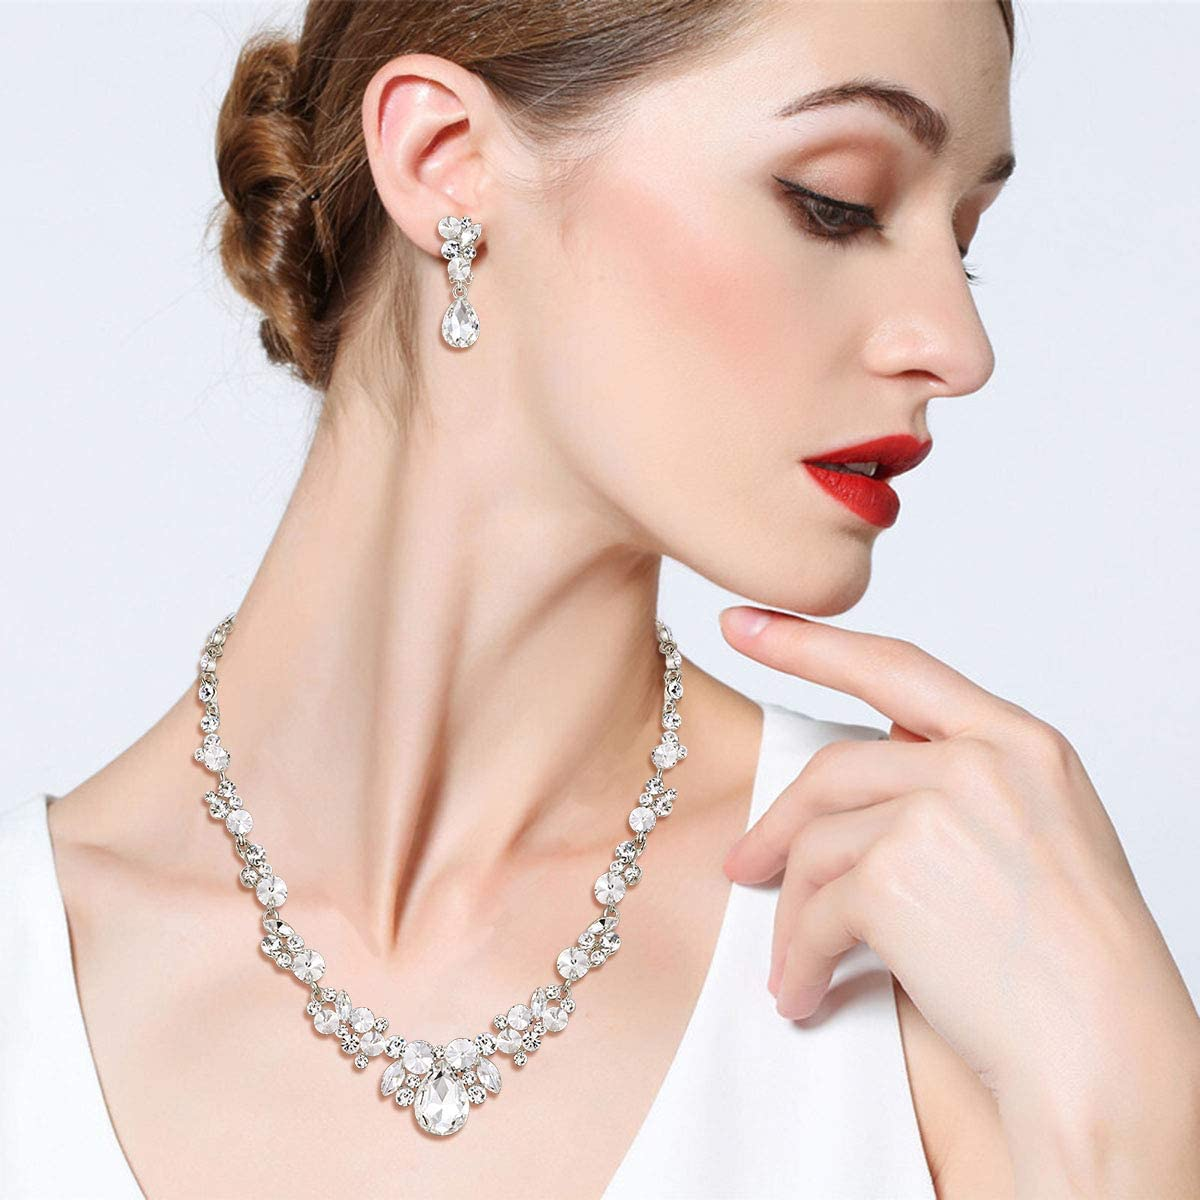 EVER FAITH Wedding Prom Jewelry Rhinestone Crystal Wedding Floral Waterdrop Necklace Clip-on Earrings Set